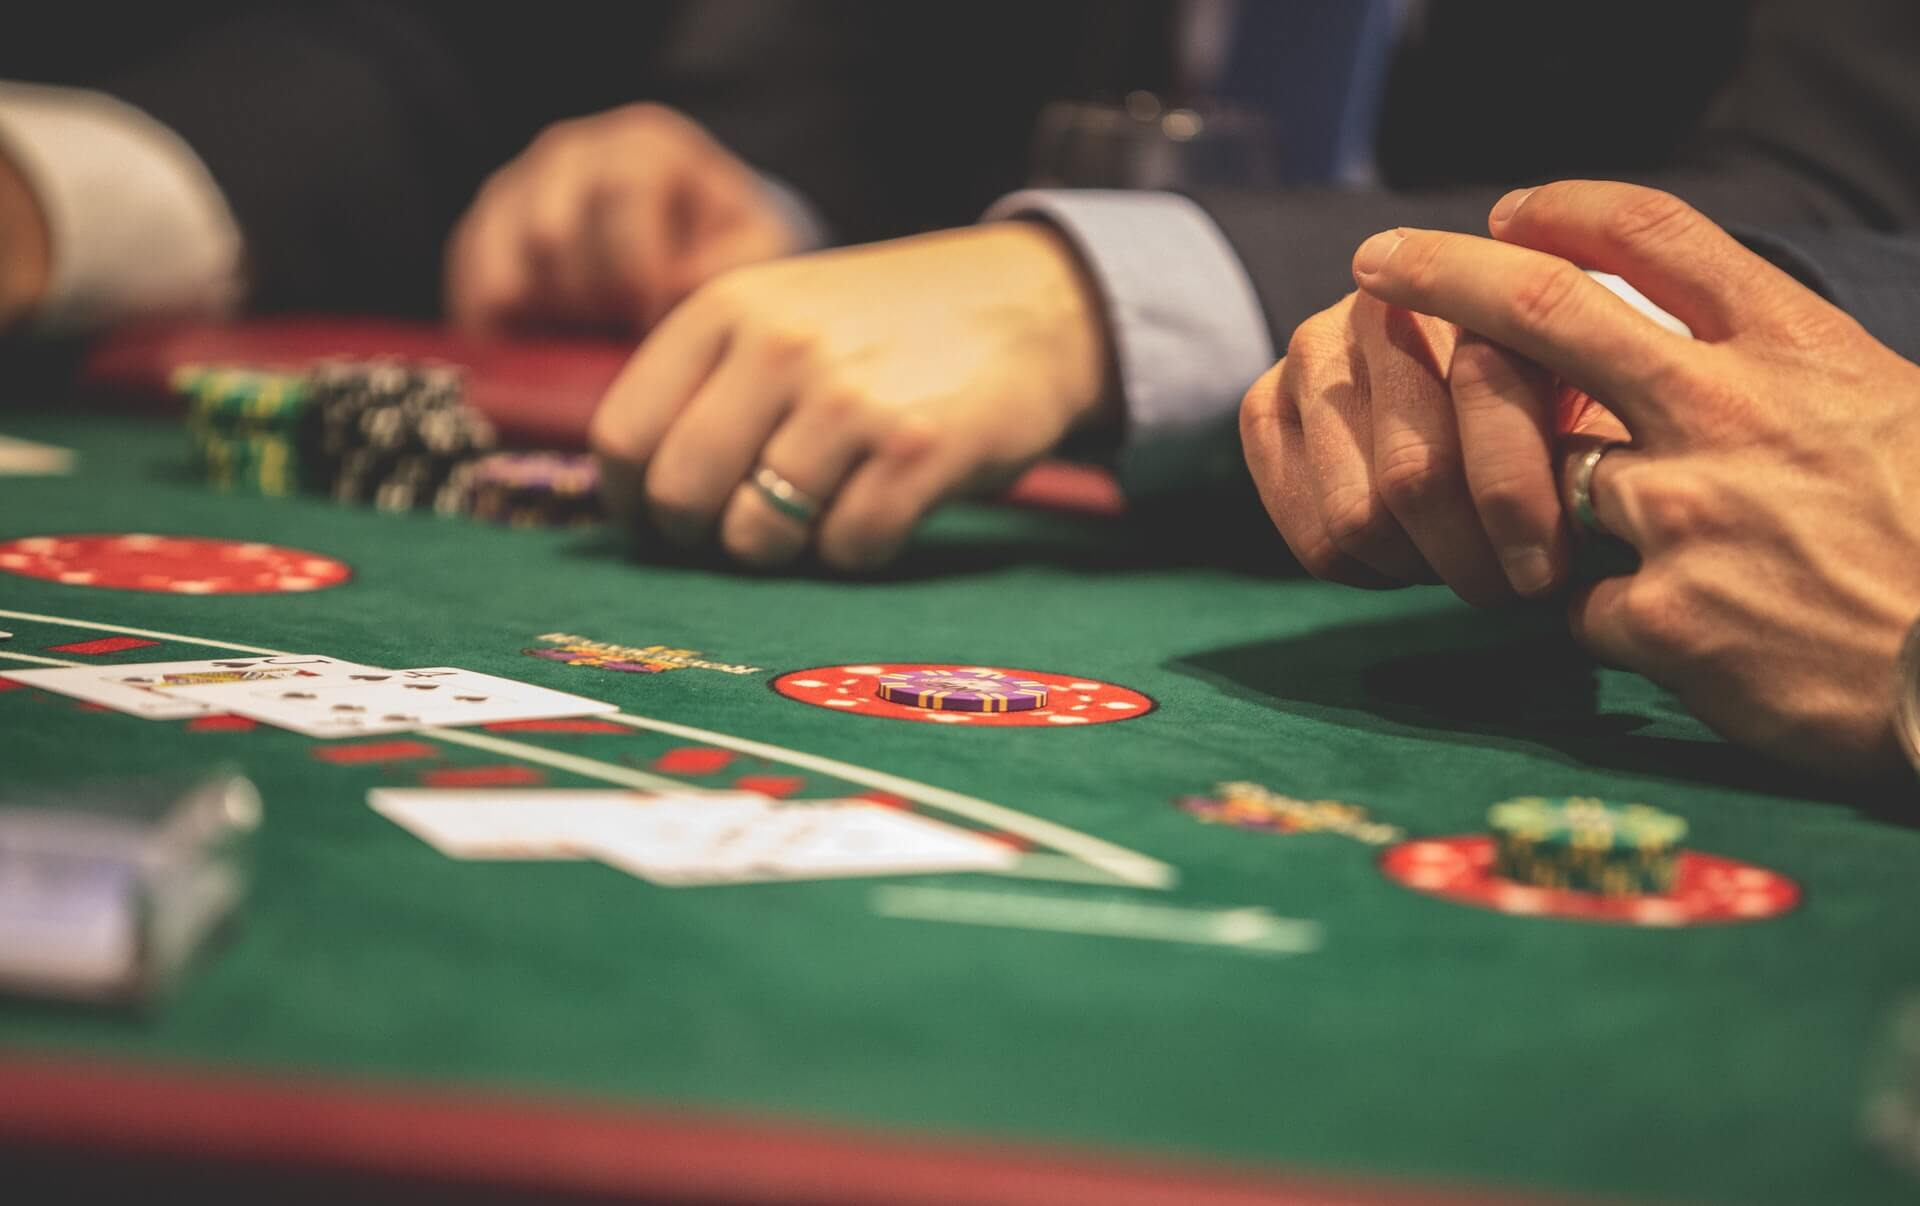 Specialized Online Gambling Treatment in Maui – Maui Recovery